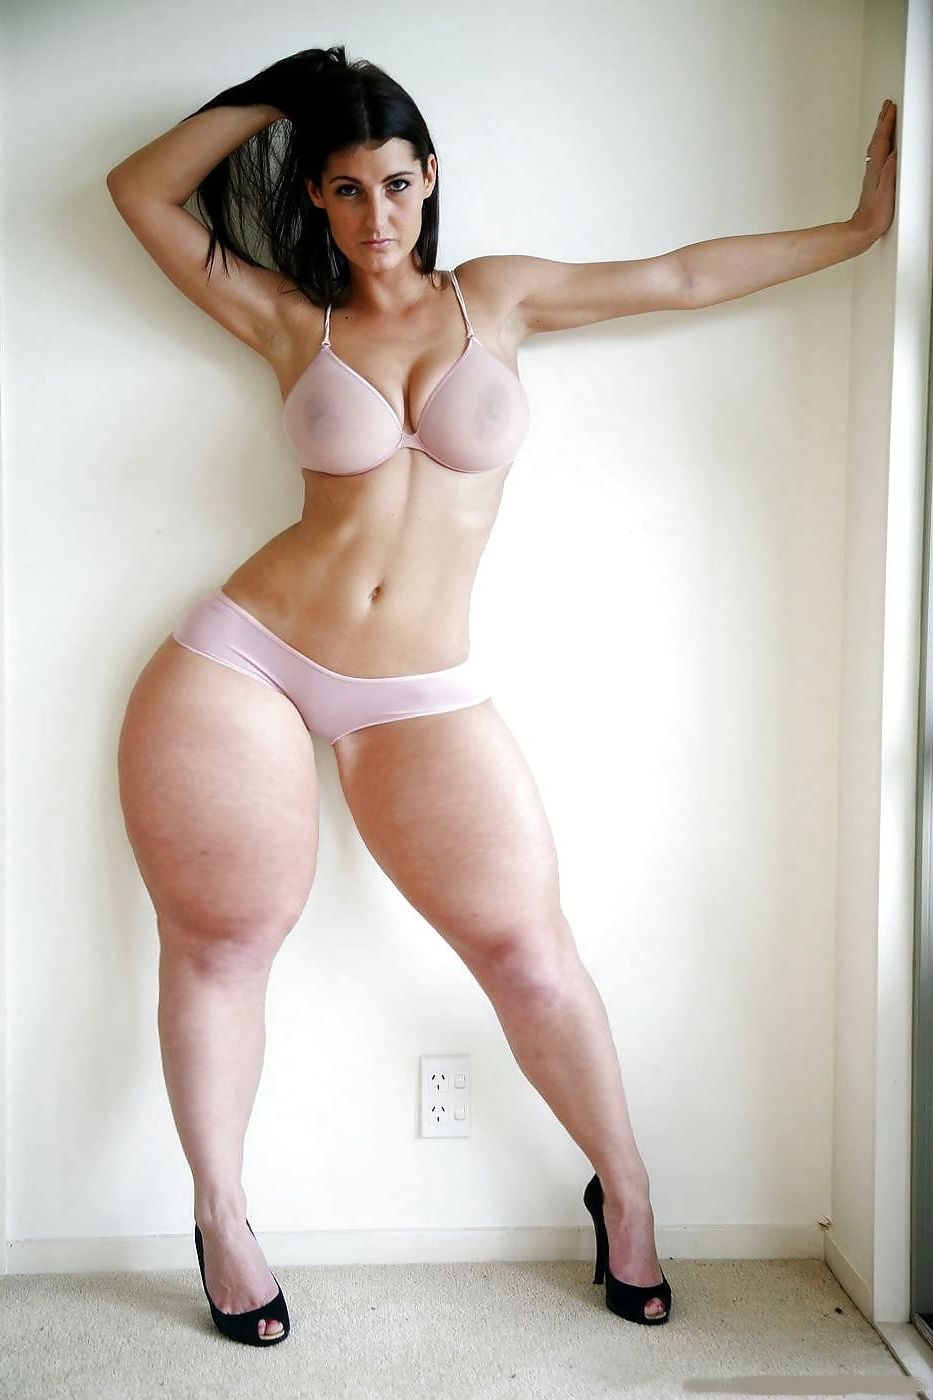 Thick with legs girls nude ХХХ ноги